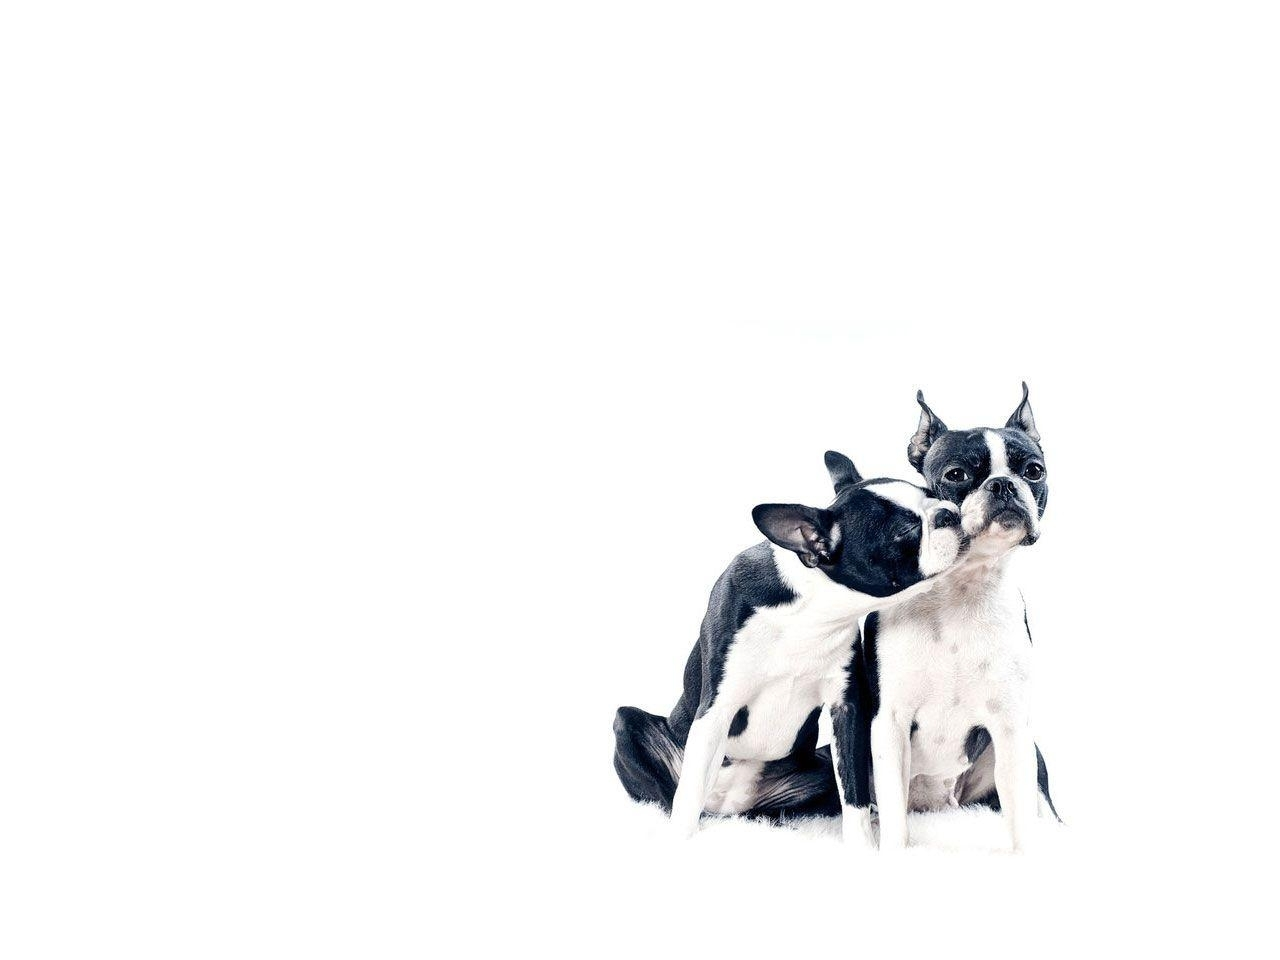 boston terrier wallpapers - wallpaper cave